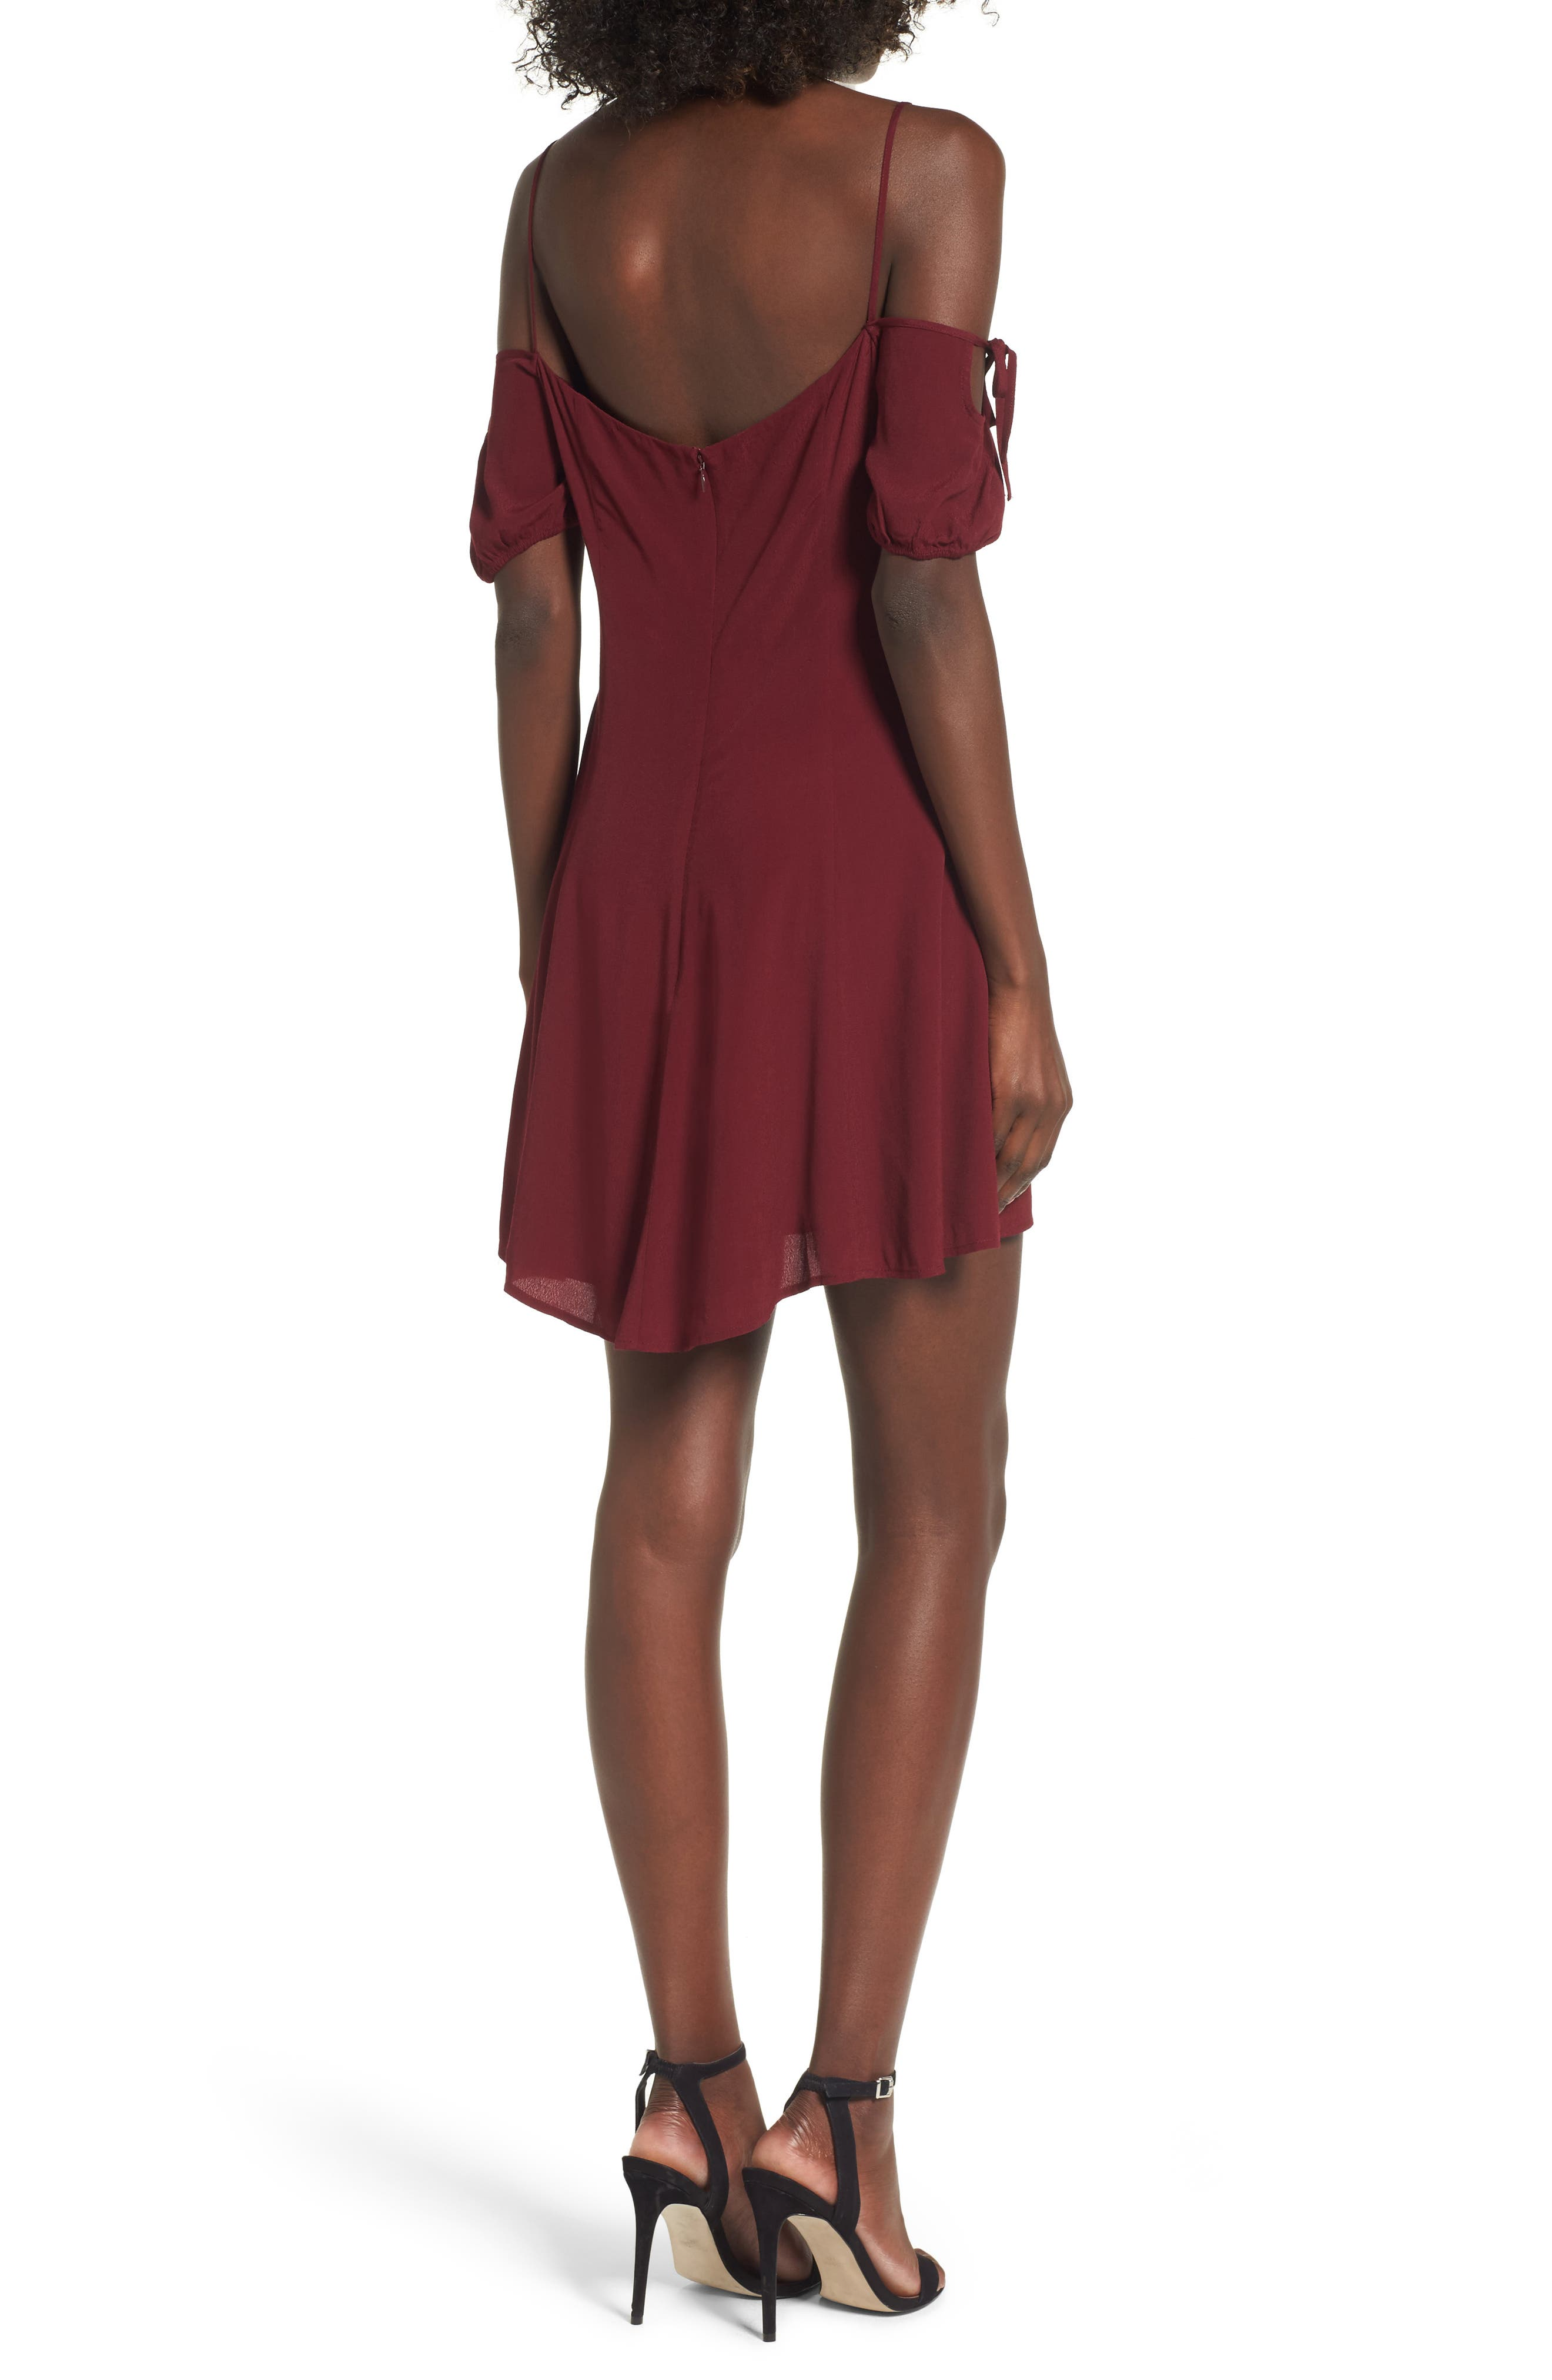 Whisper Minidress,                             Alternate thumbnail 2, color,                             930